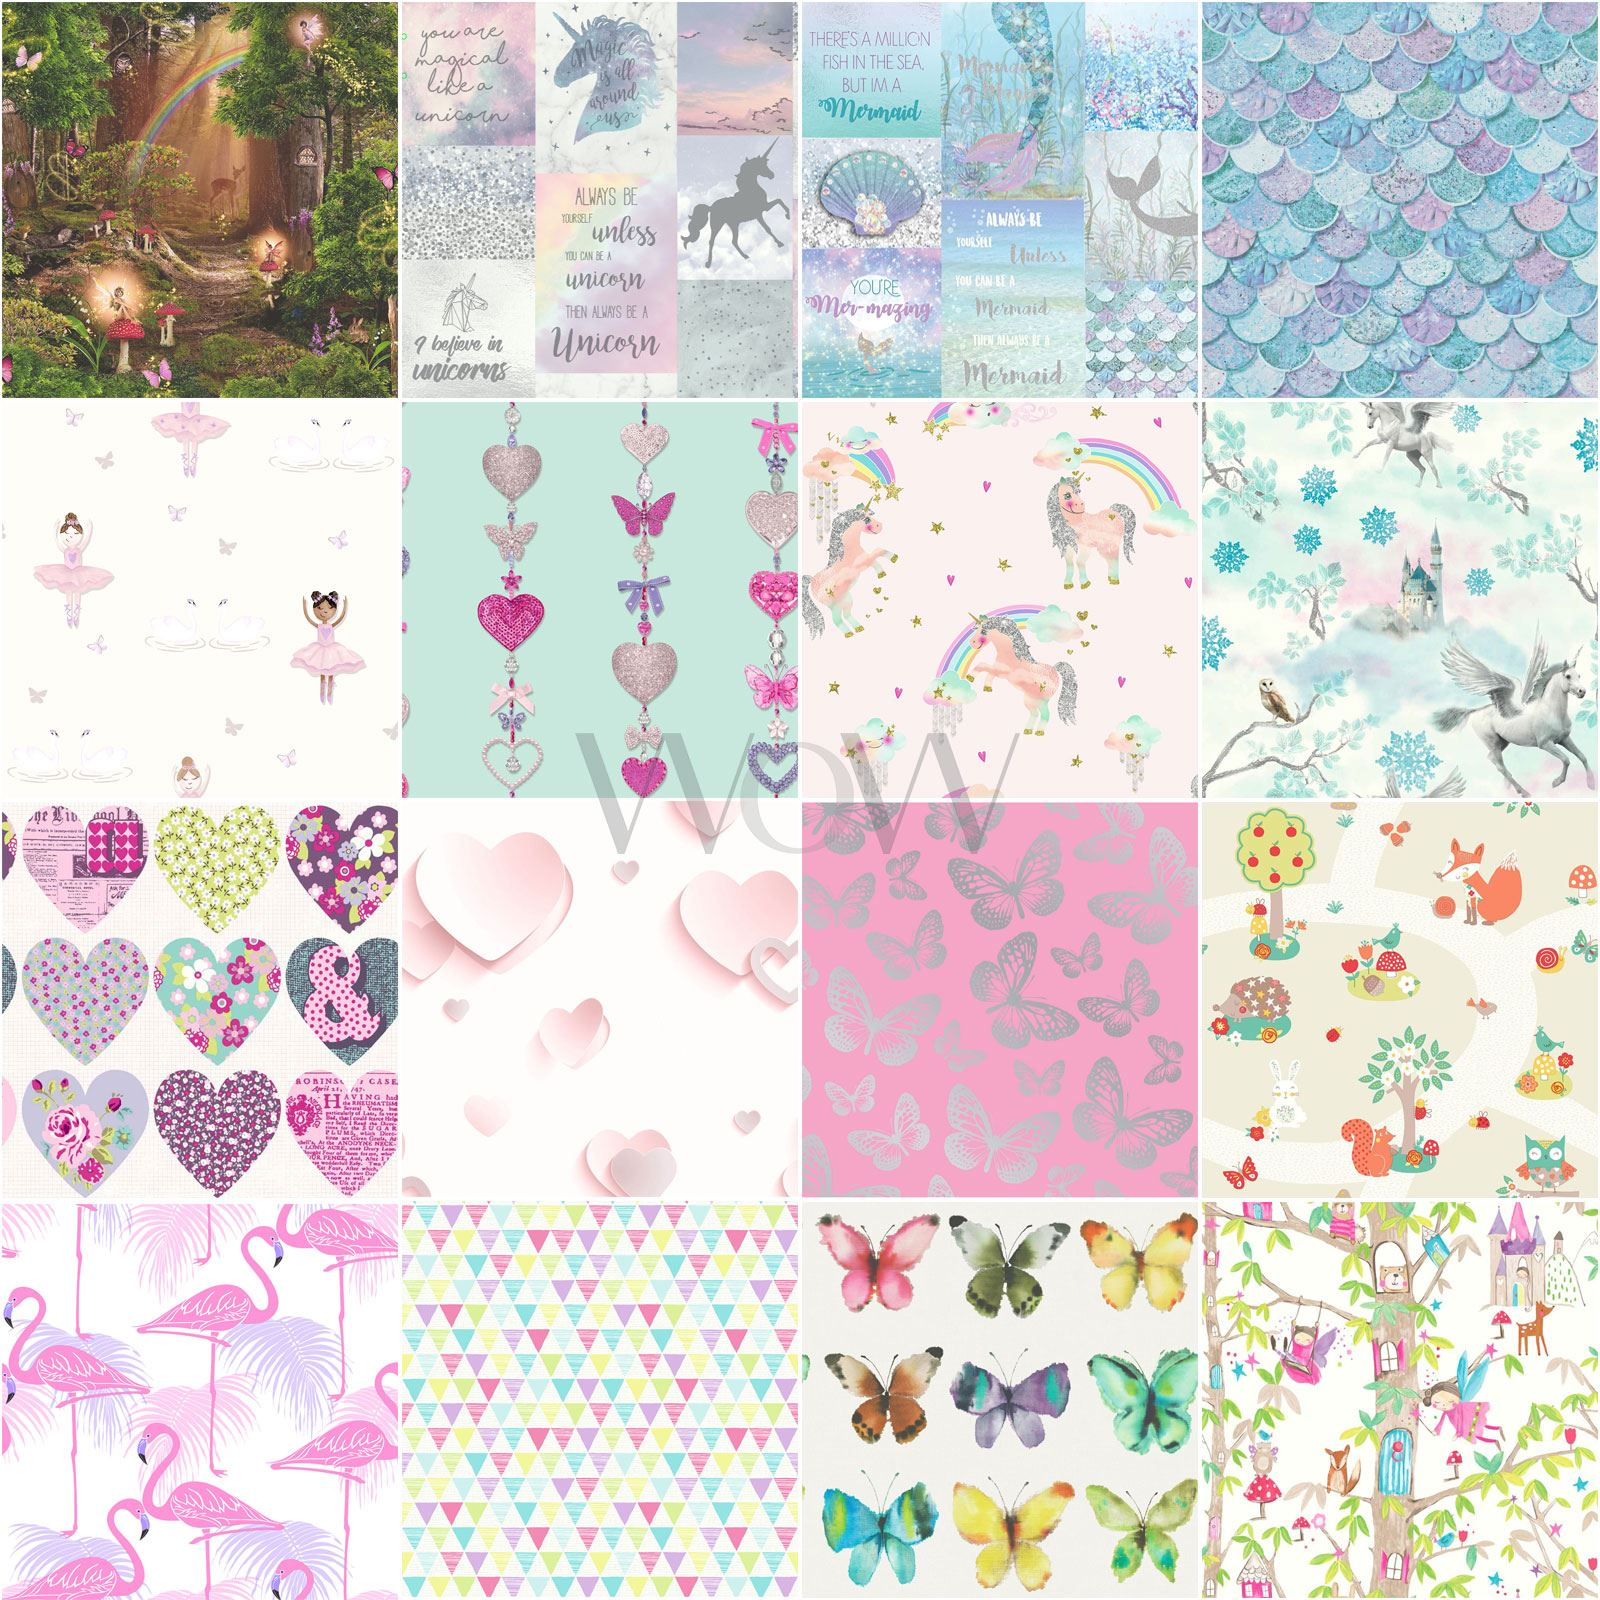 Girls Kids Wallpaper Flamingo Unicorn Hearts Mermaid Llama